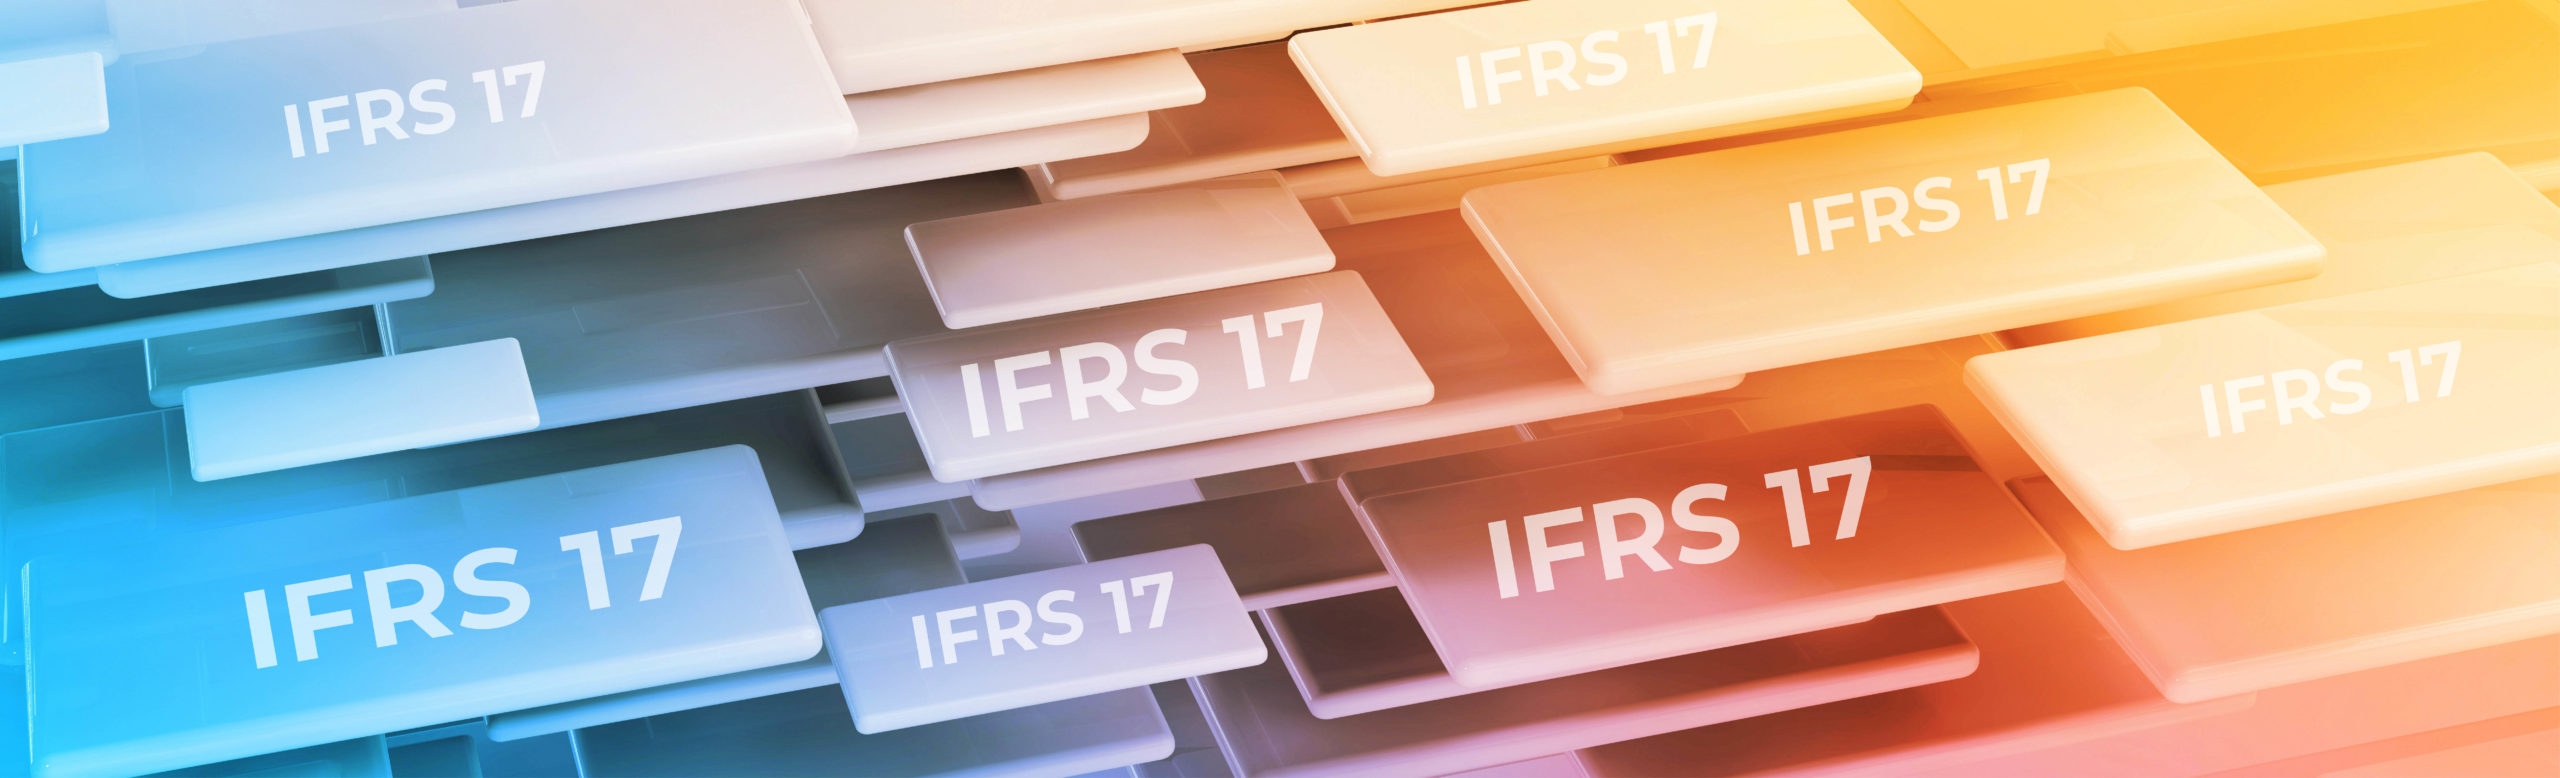 IFRS17-banner-PM